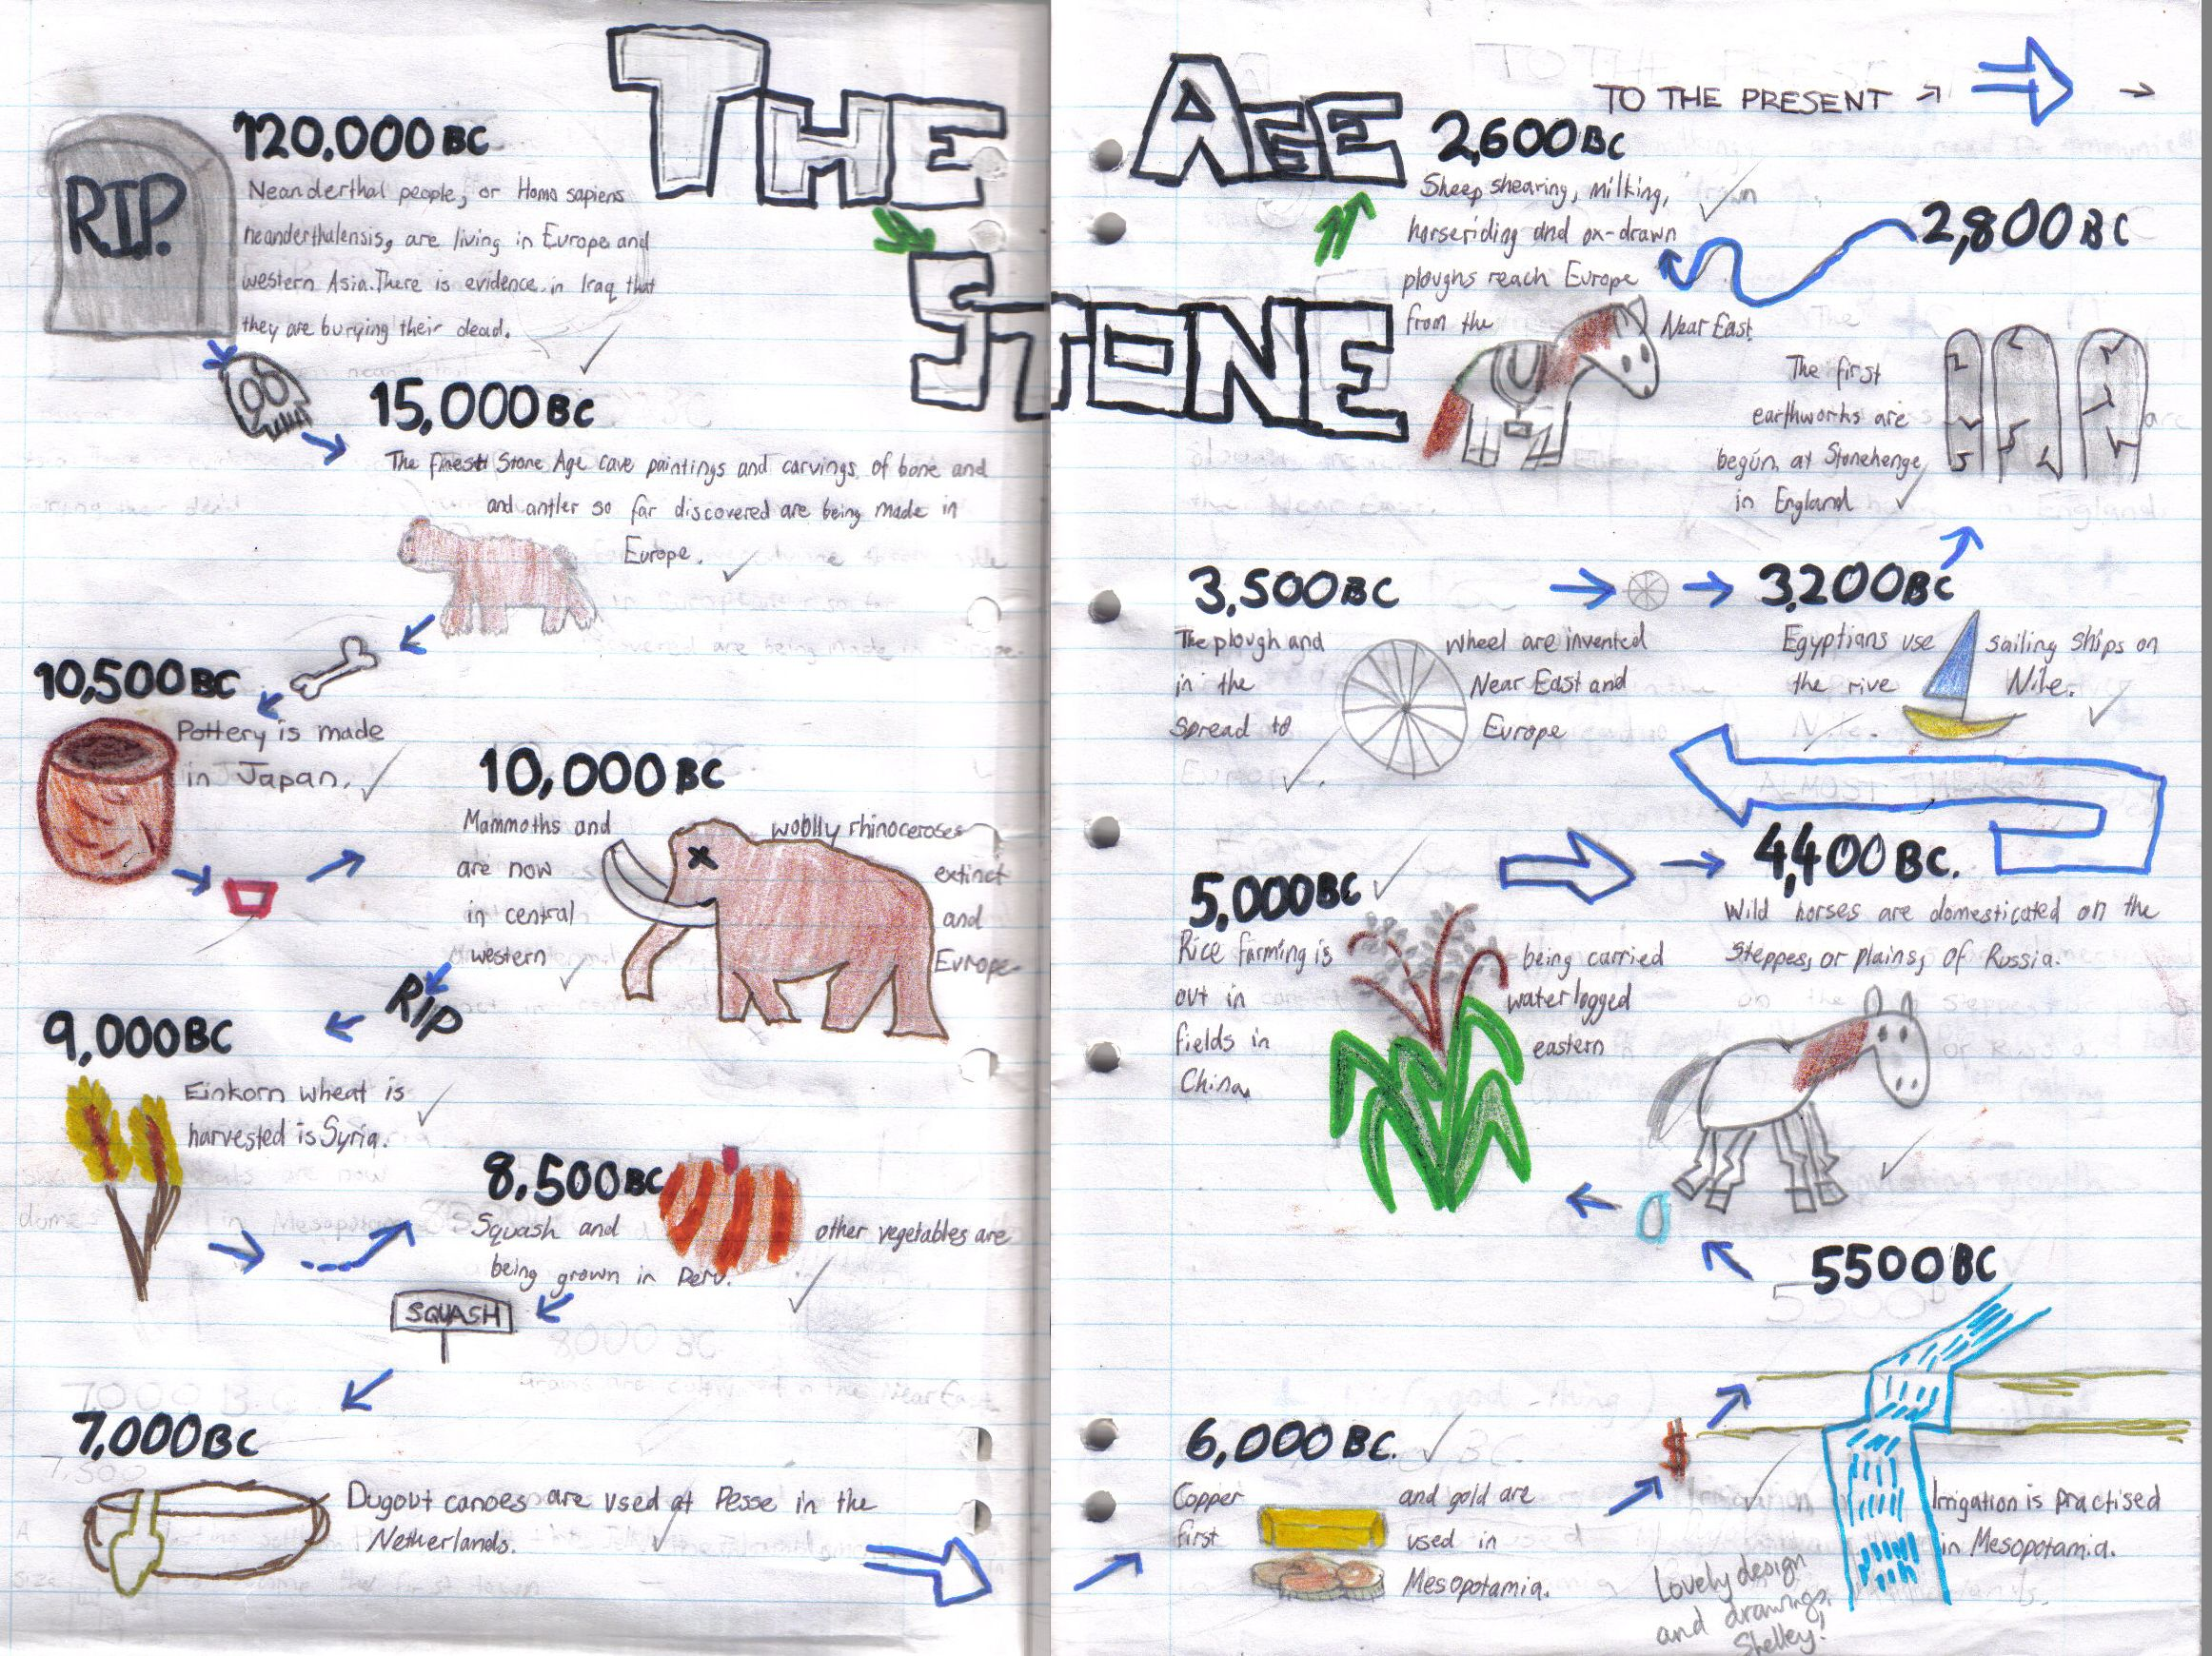 Shelley 7x Timeline Stone Age Copy